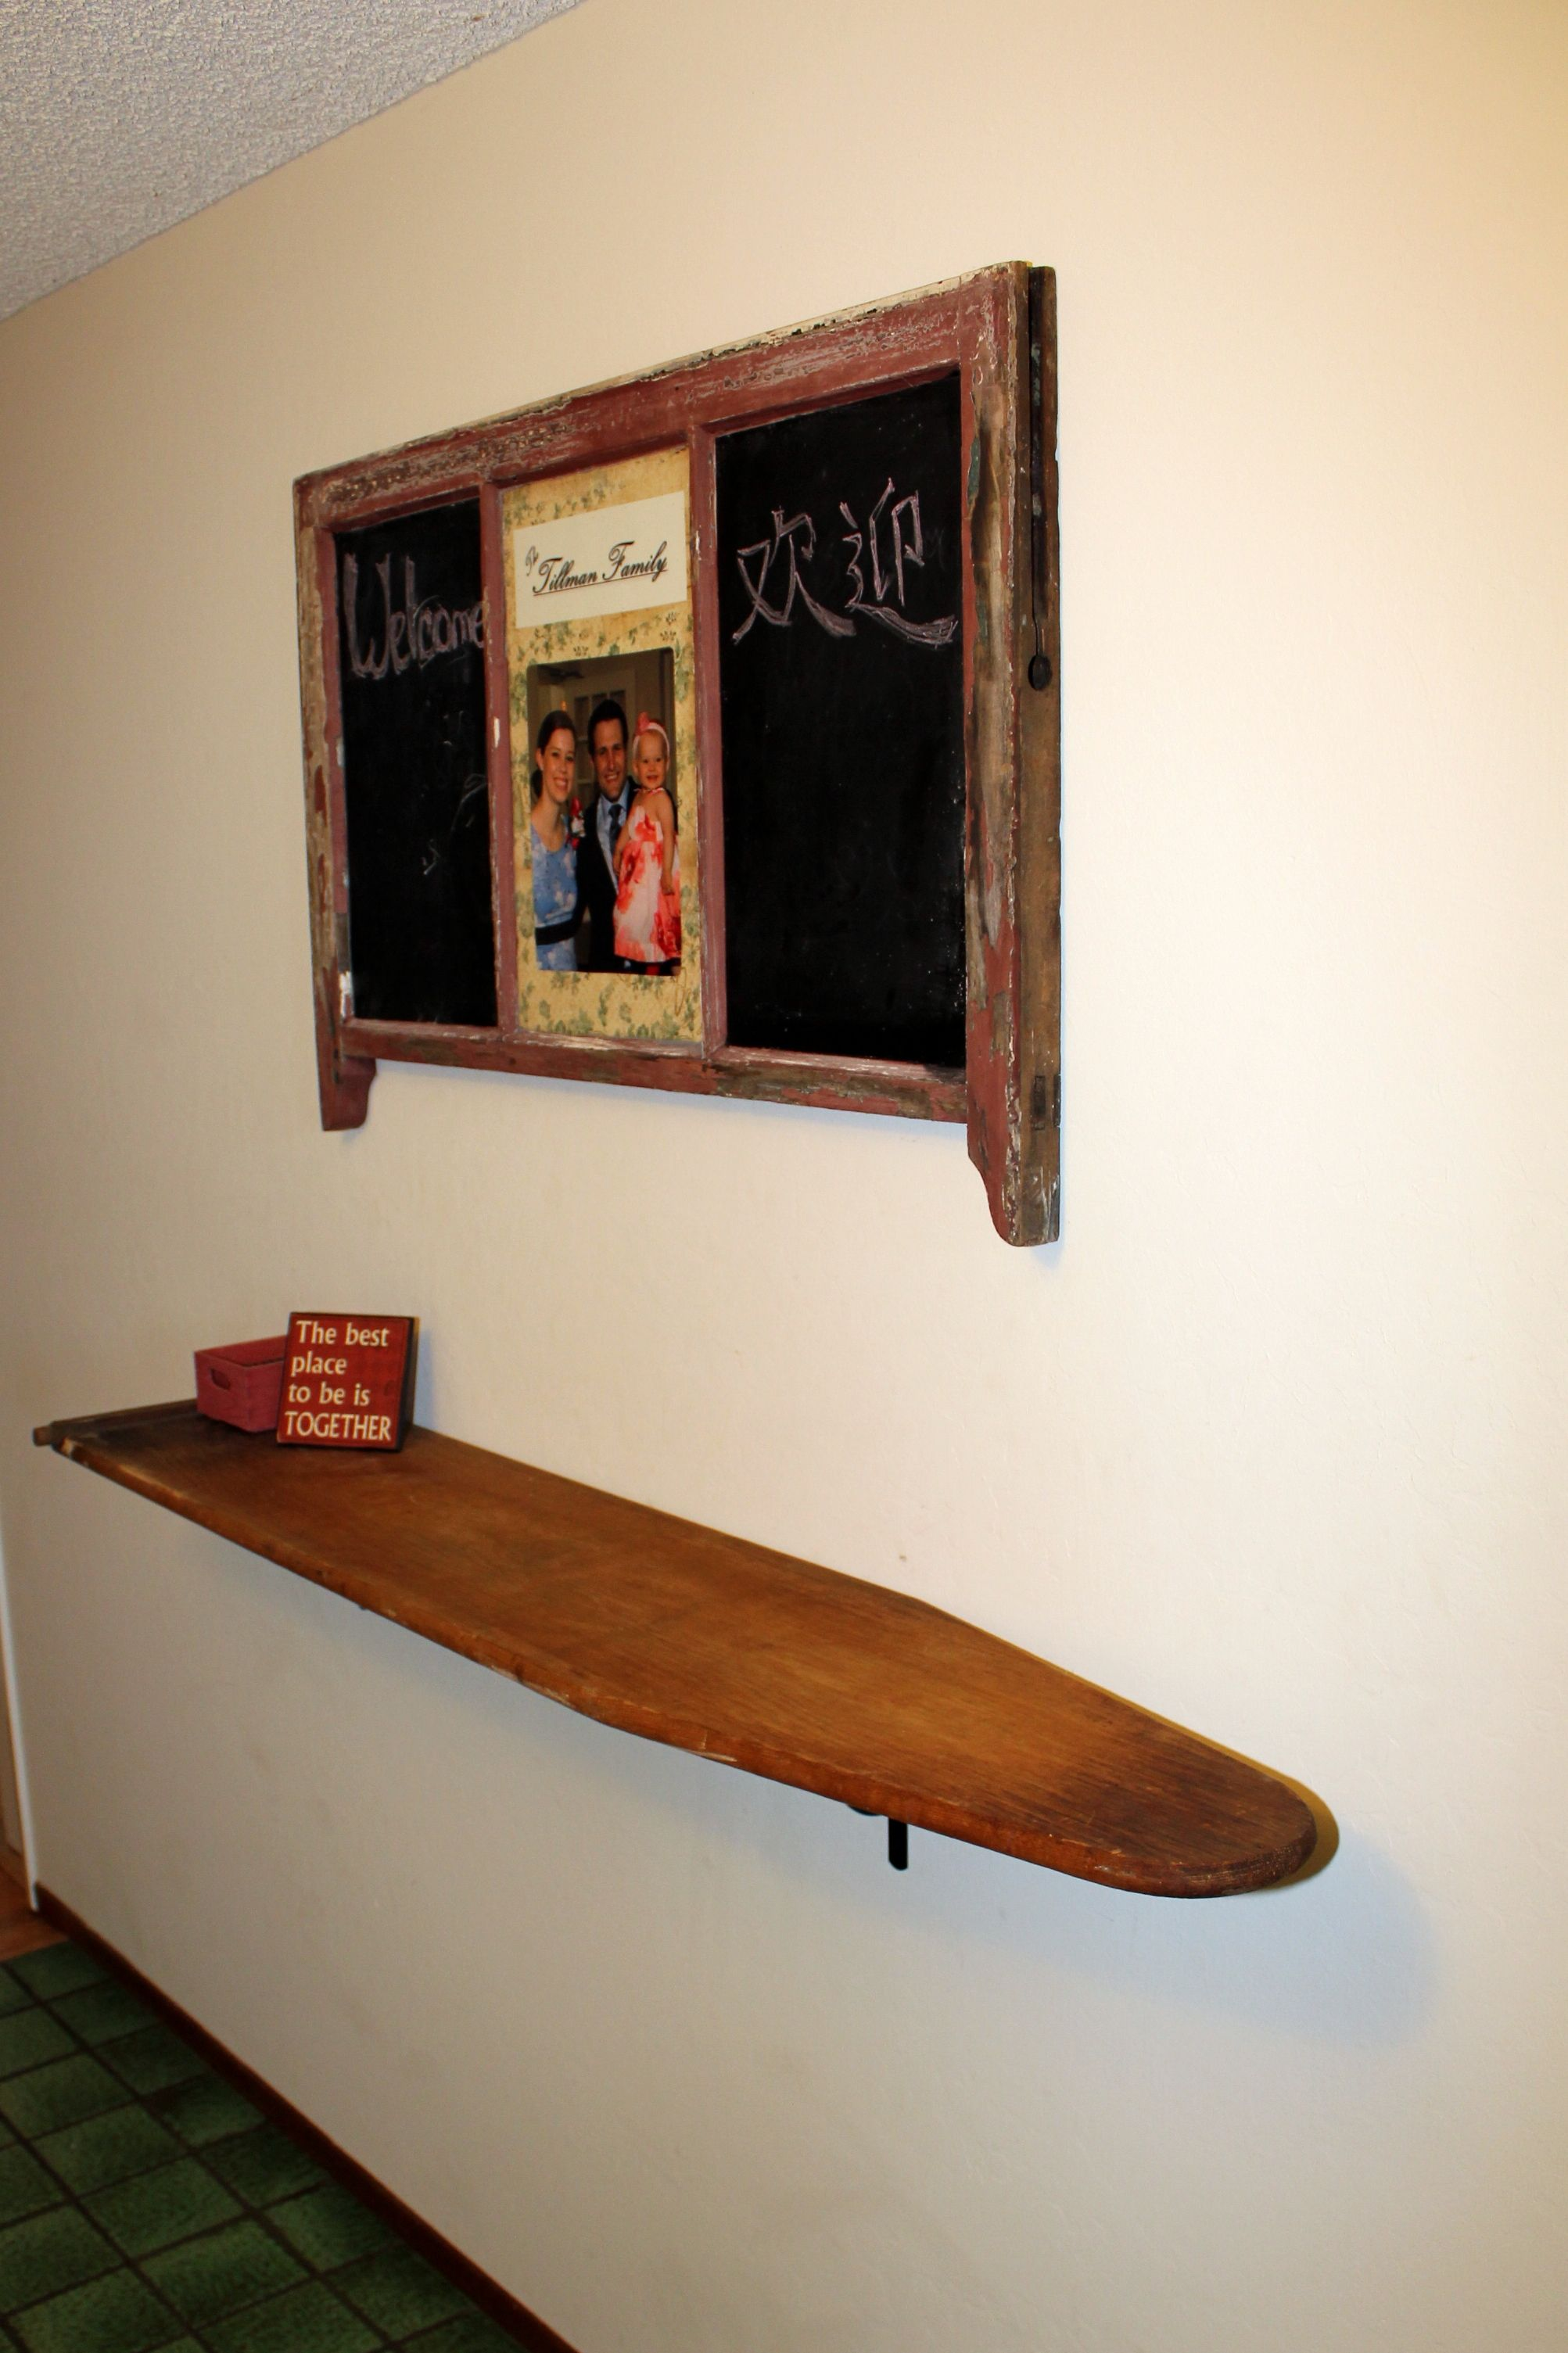 Shelf Is An Old Wooden Ironing Board Upcycle Recycle Salvage Diy